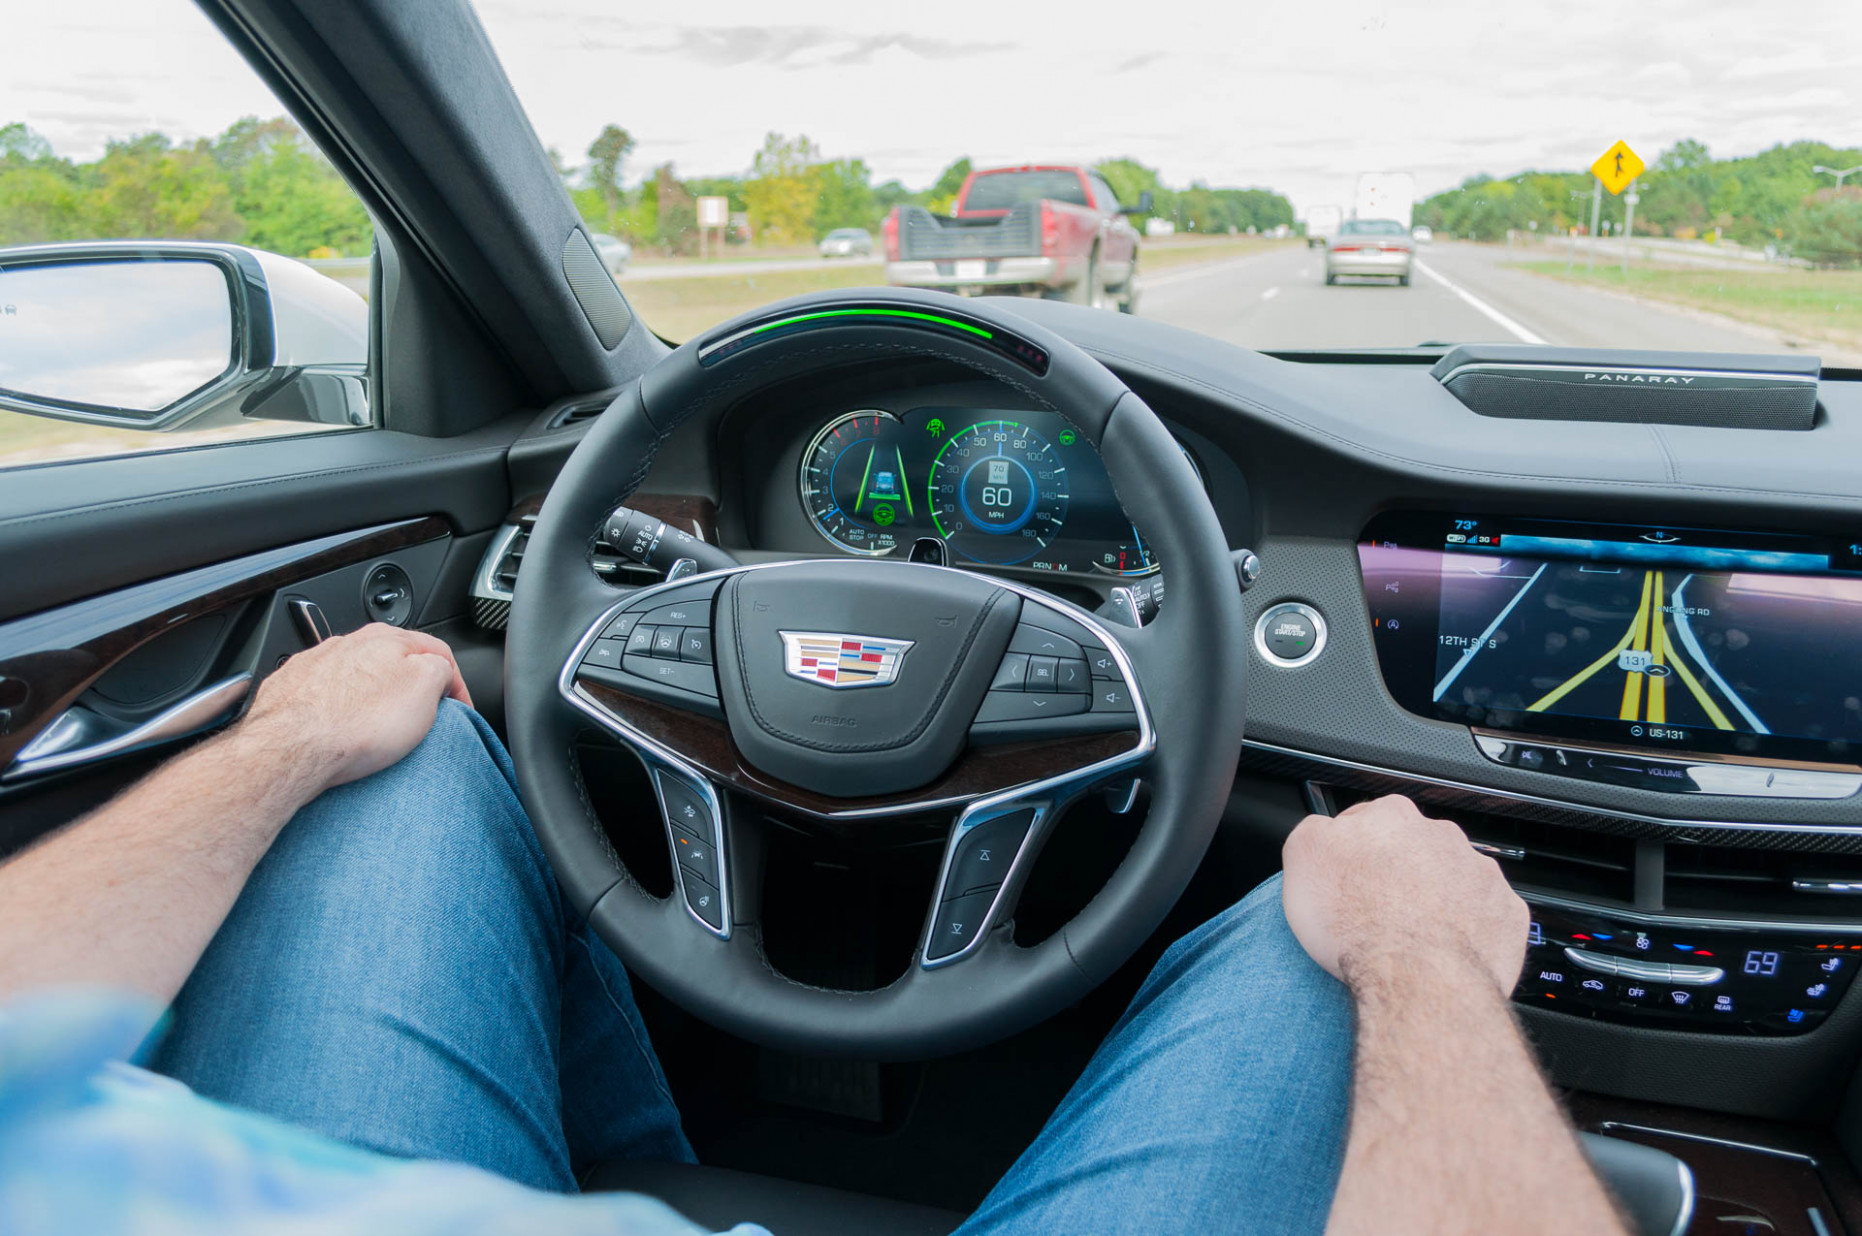 Entire Cadillac lineup to get Super Cruise by end of 12 - 2020 cadillac lineup